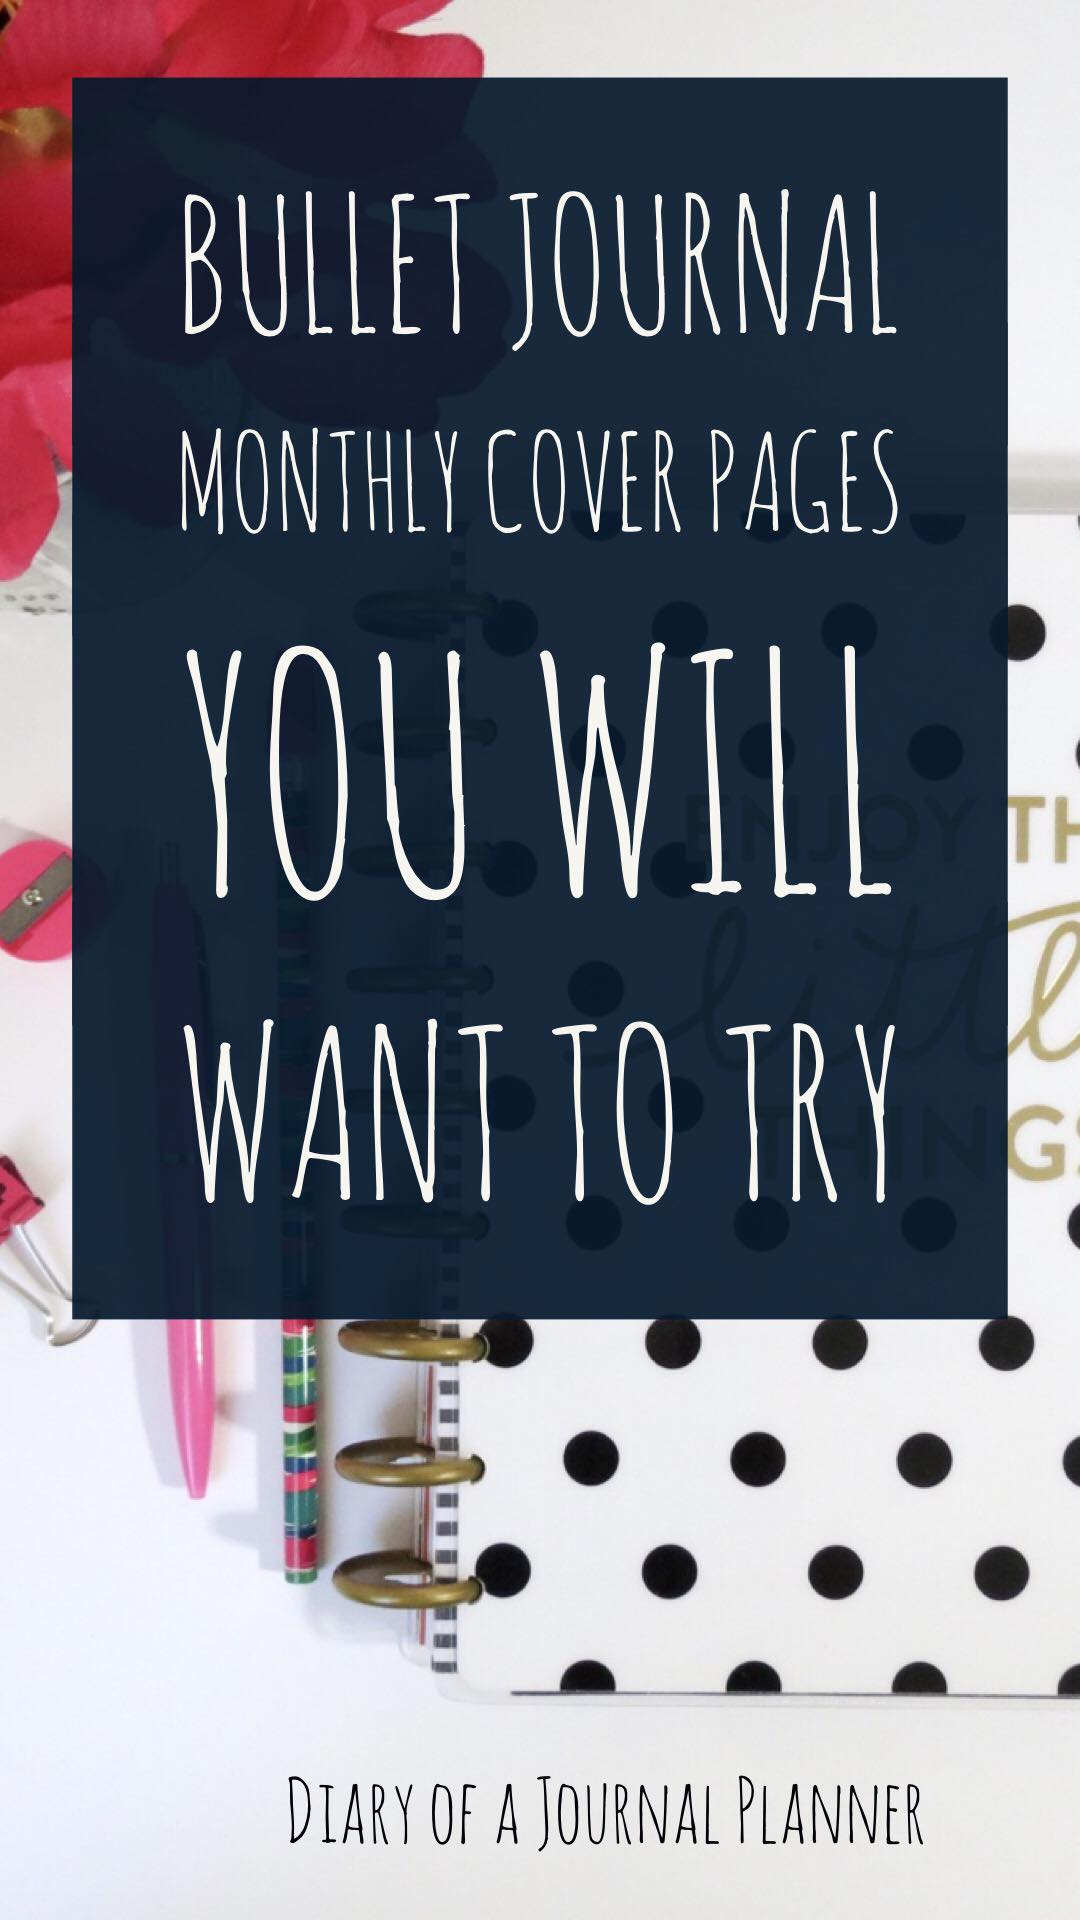 Cover Page Ideas for journals and panners